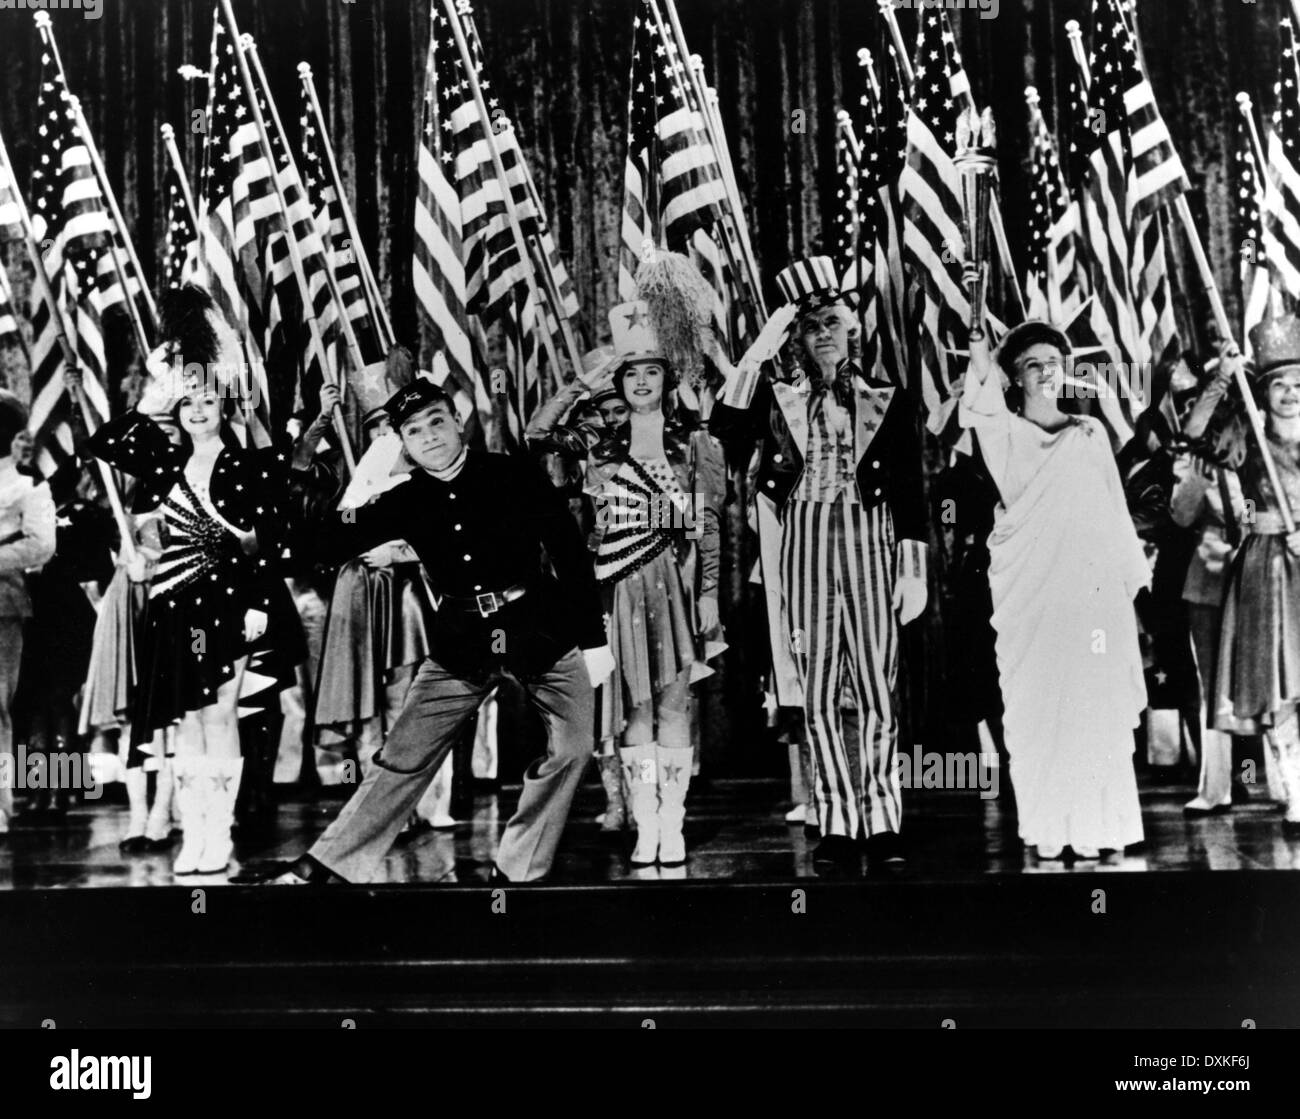 YANKEE Doodle Dandy (US1942) JAMES CAGNEY WARNER BROS Photo Stock